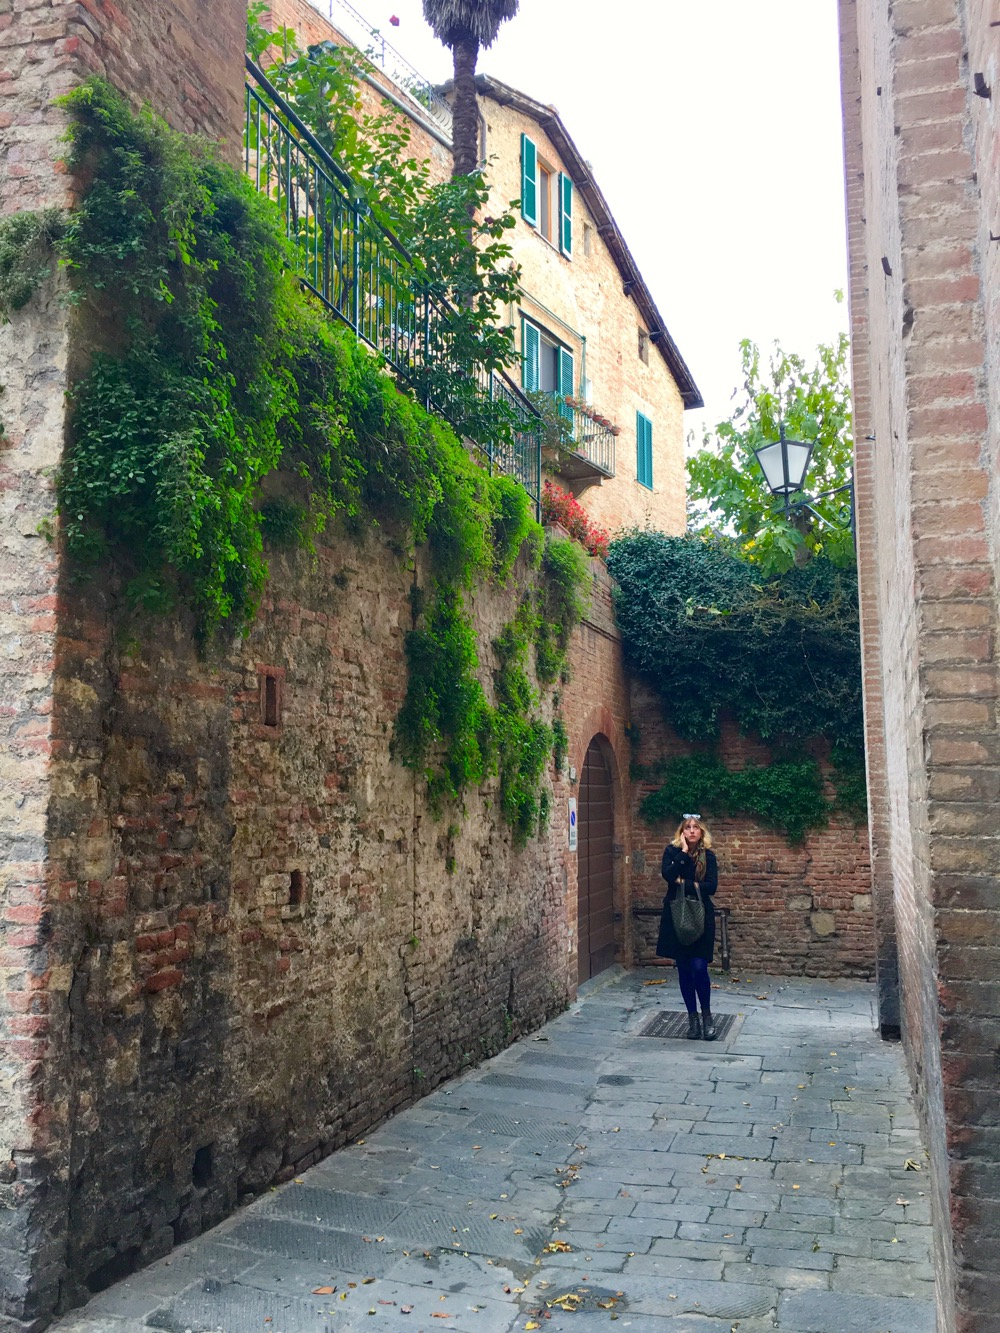 Pretty scenes from our day in Sienna.